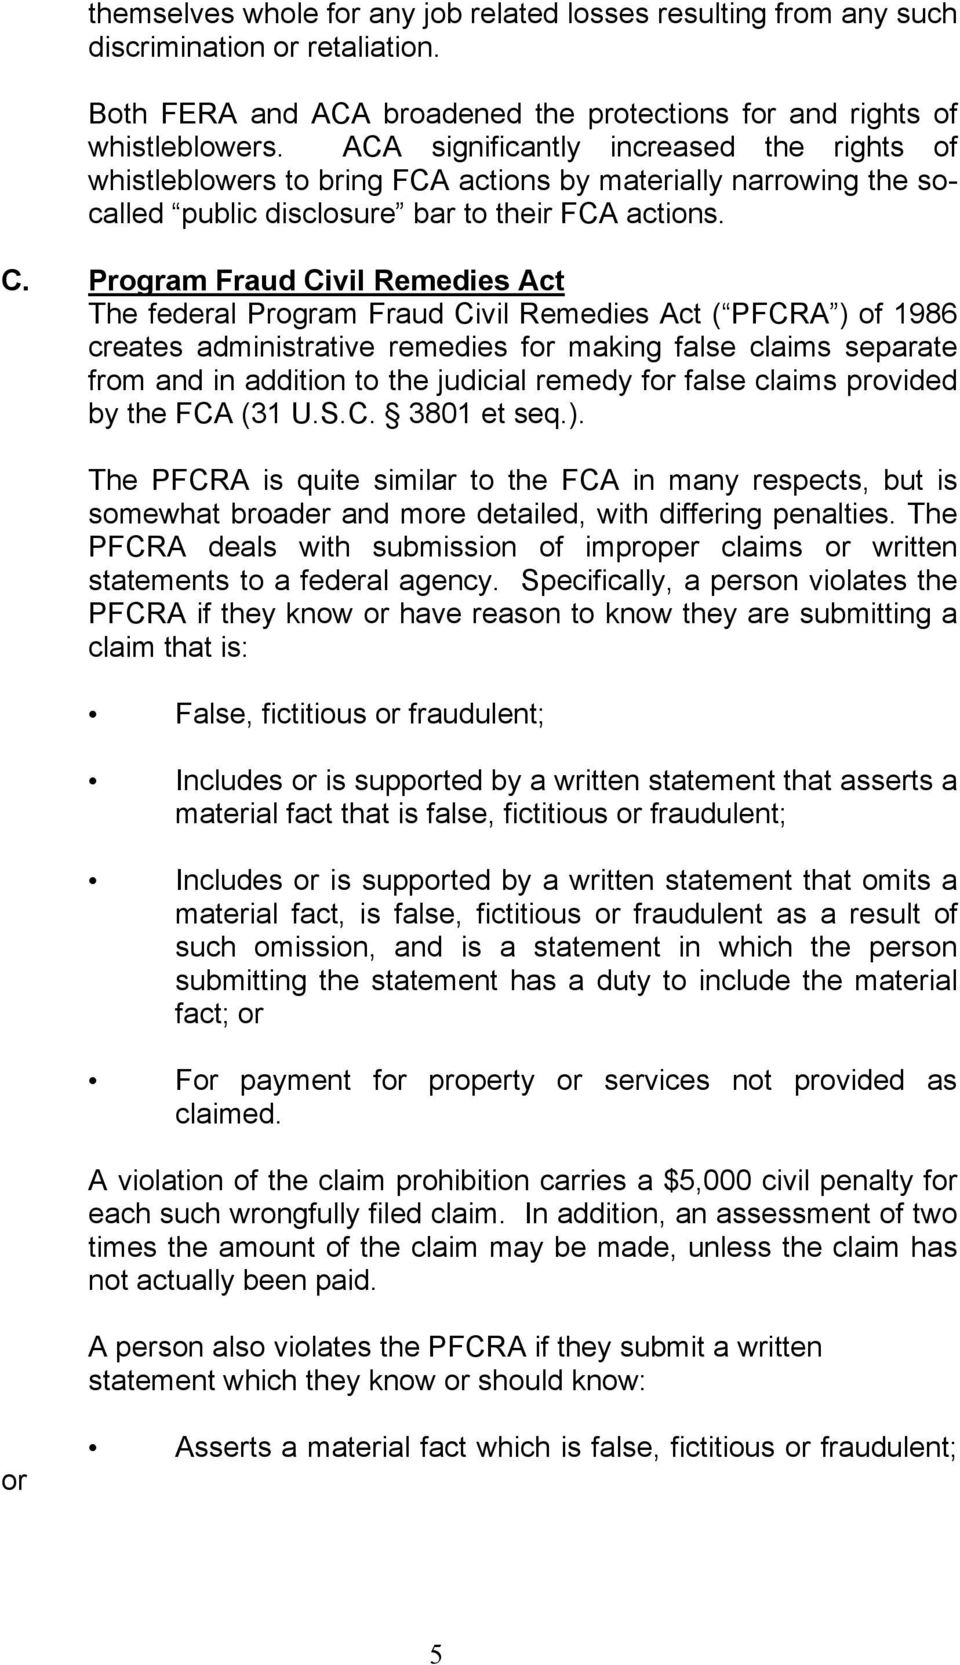 Program Fraud Civil Remedies Act The federal Program Fraud Civil Remedies Act ( PFCRA ) of 1986 creates administrative remedies for making false claims separate from and in addition to the judicial